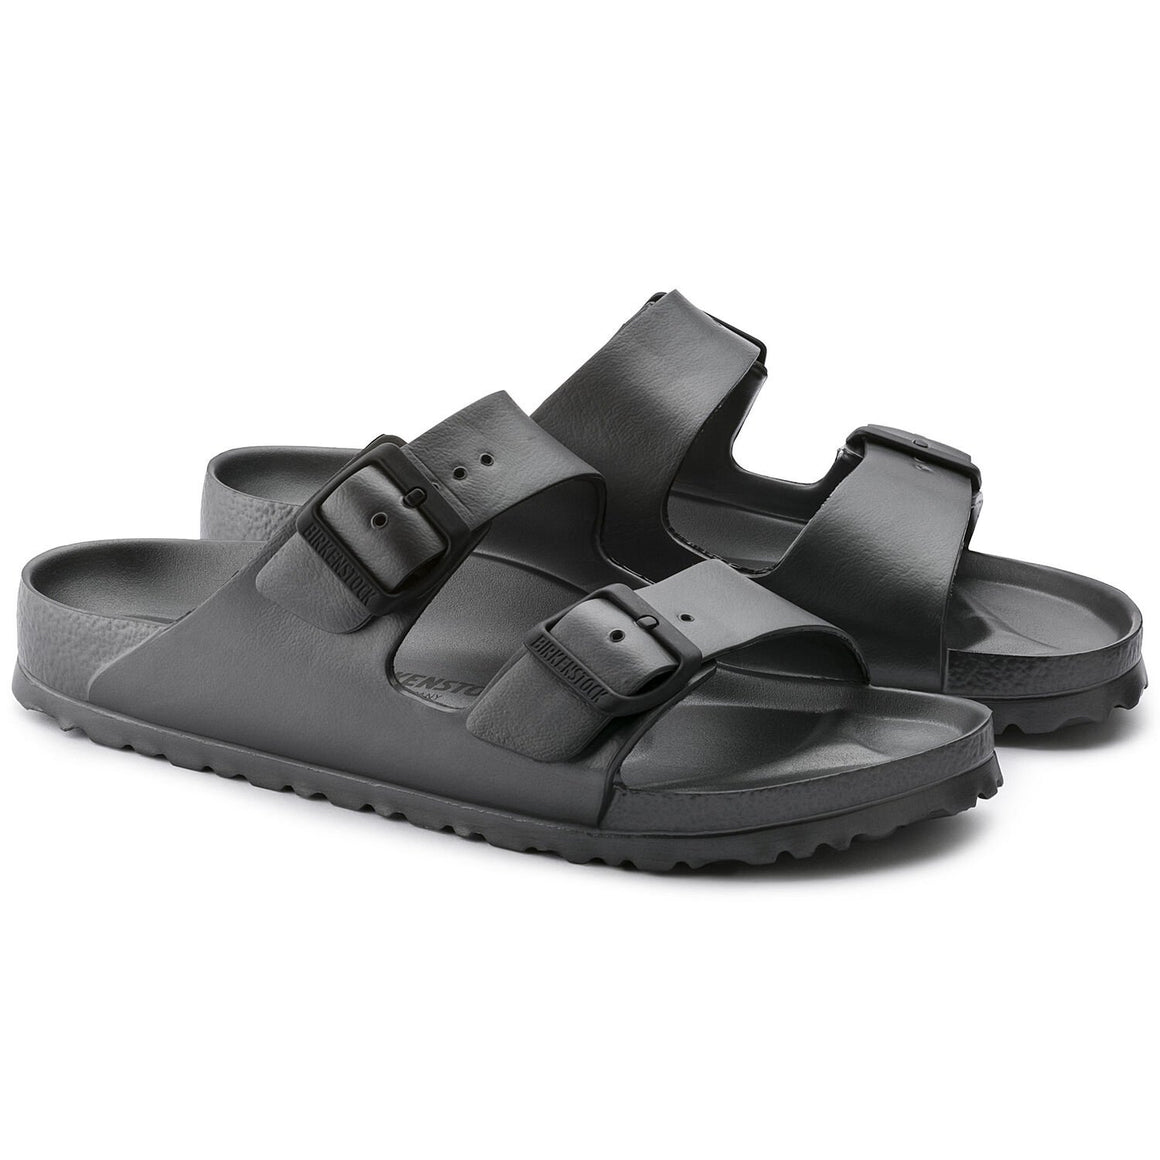 Birkenstock 1001498-N Women's Black ARIZONA EVA